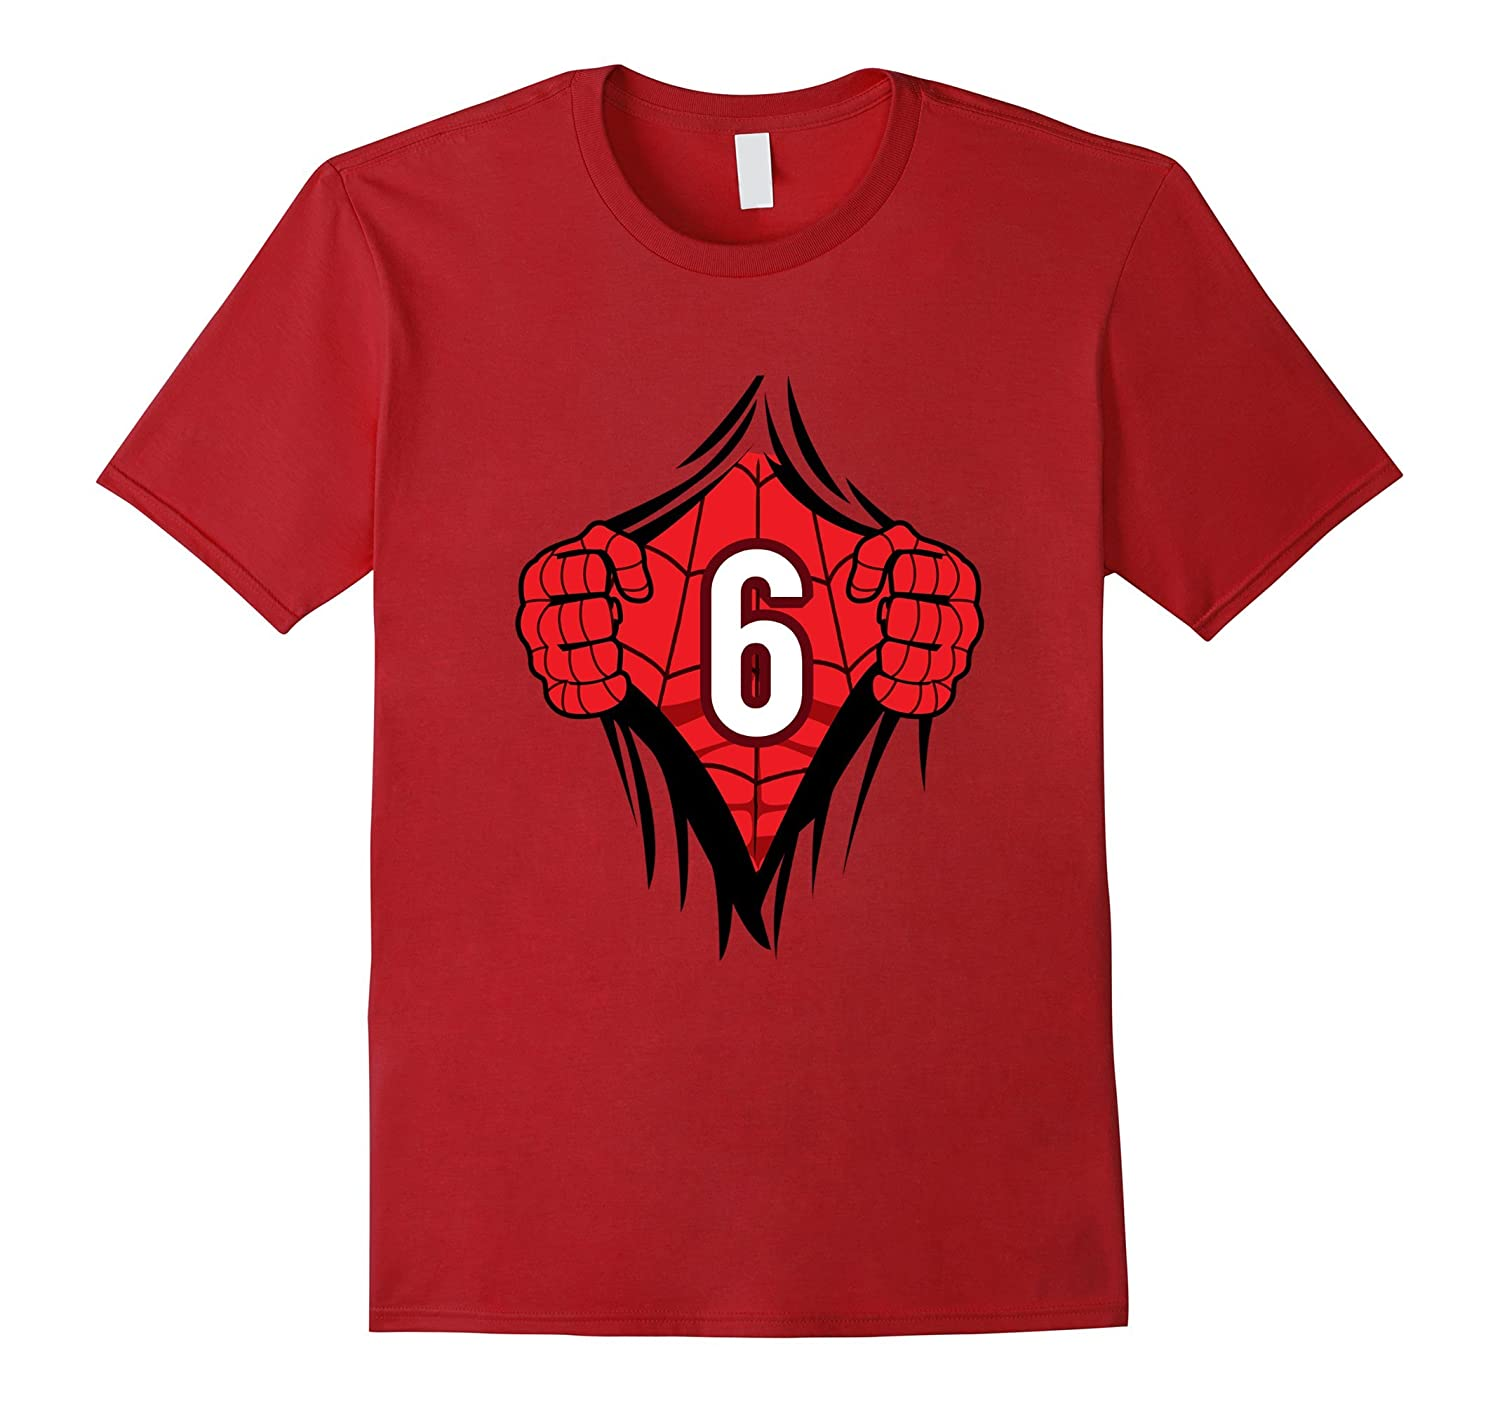 Superhero Birthday Shirt 6 Year Old